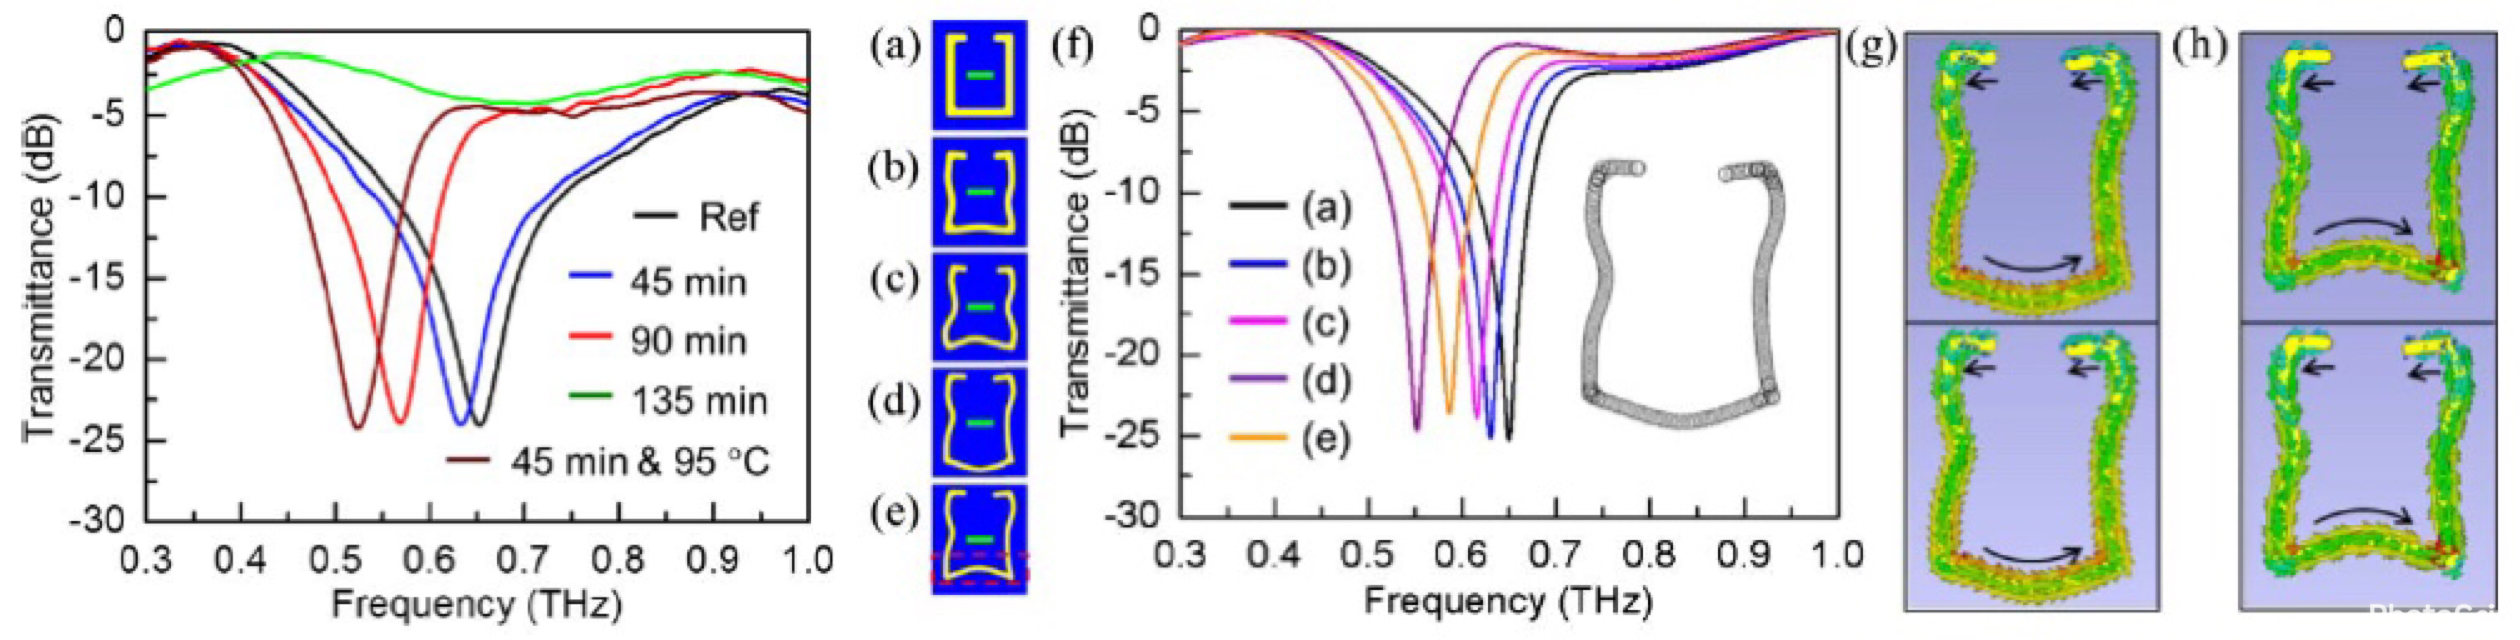 Effect of swelling of a photoresist on electromagnetic resonance of terahertz metamaterials